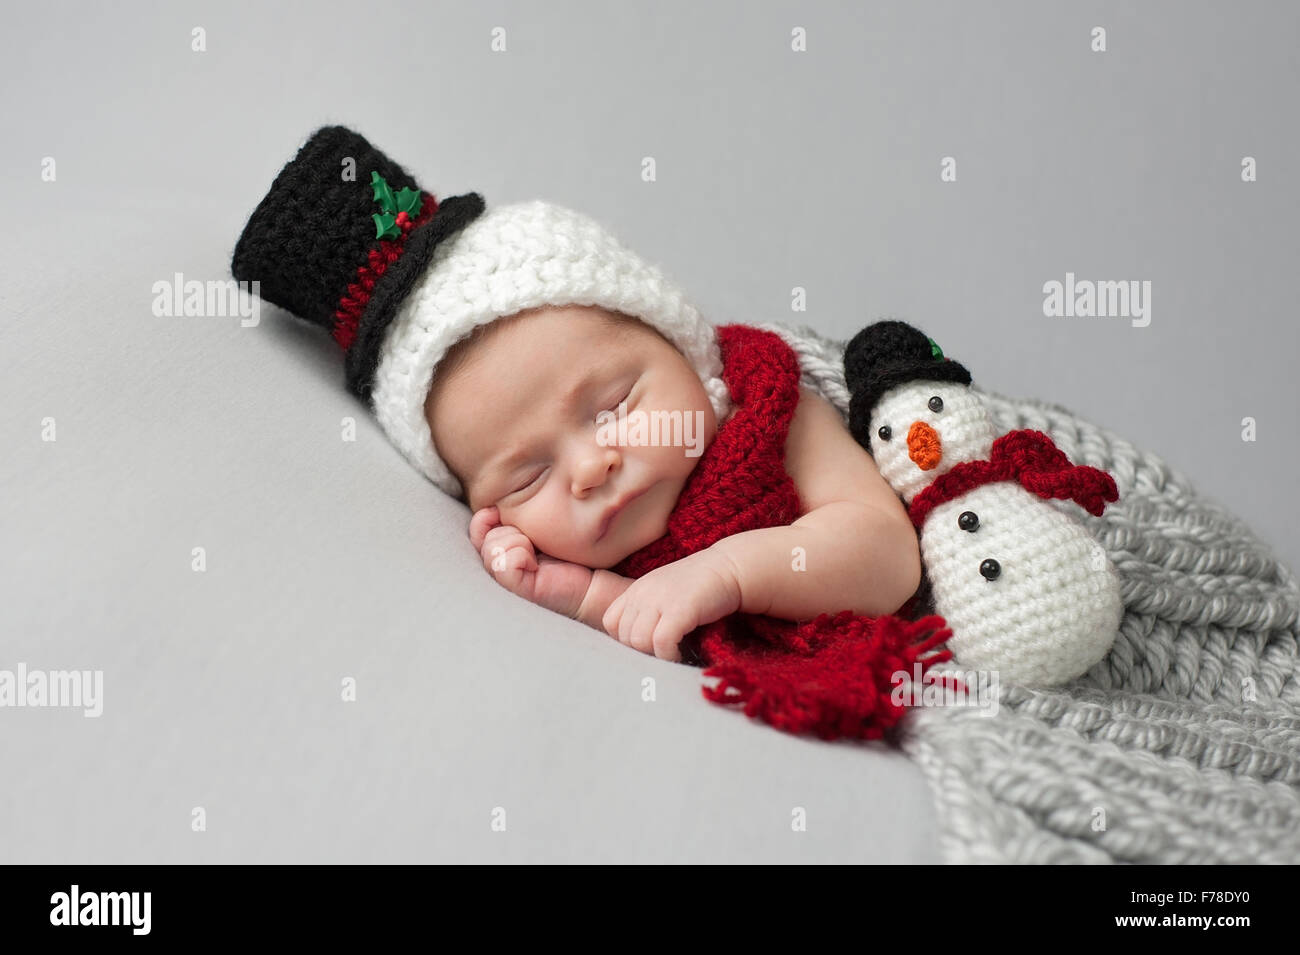 Sleeping, two week old, newborn, baby boy wearing a crocheted snowman bonnet  and scarf with matching plush toy. daa4c52850a